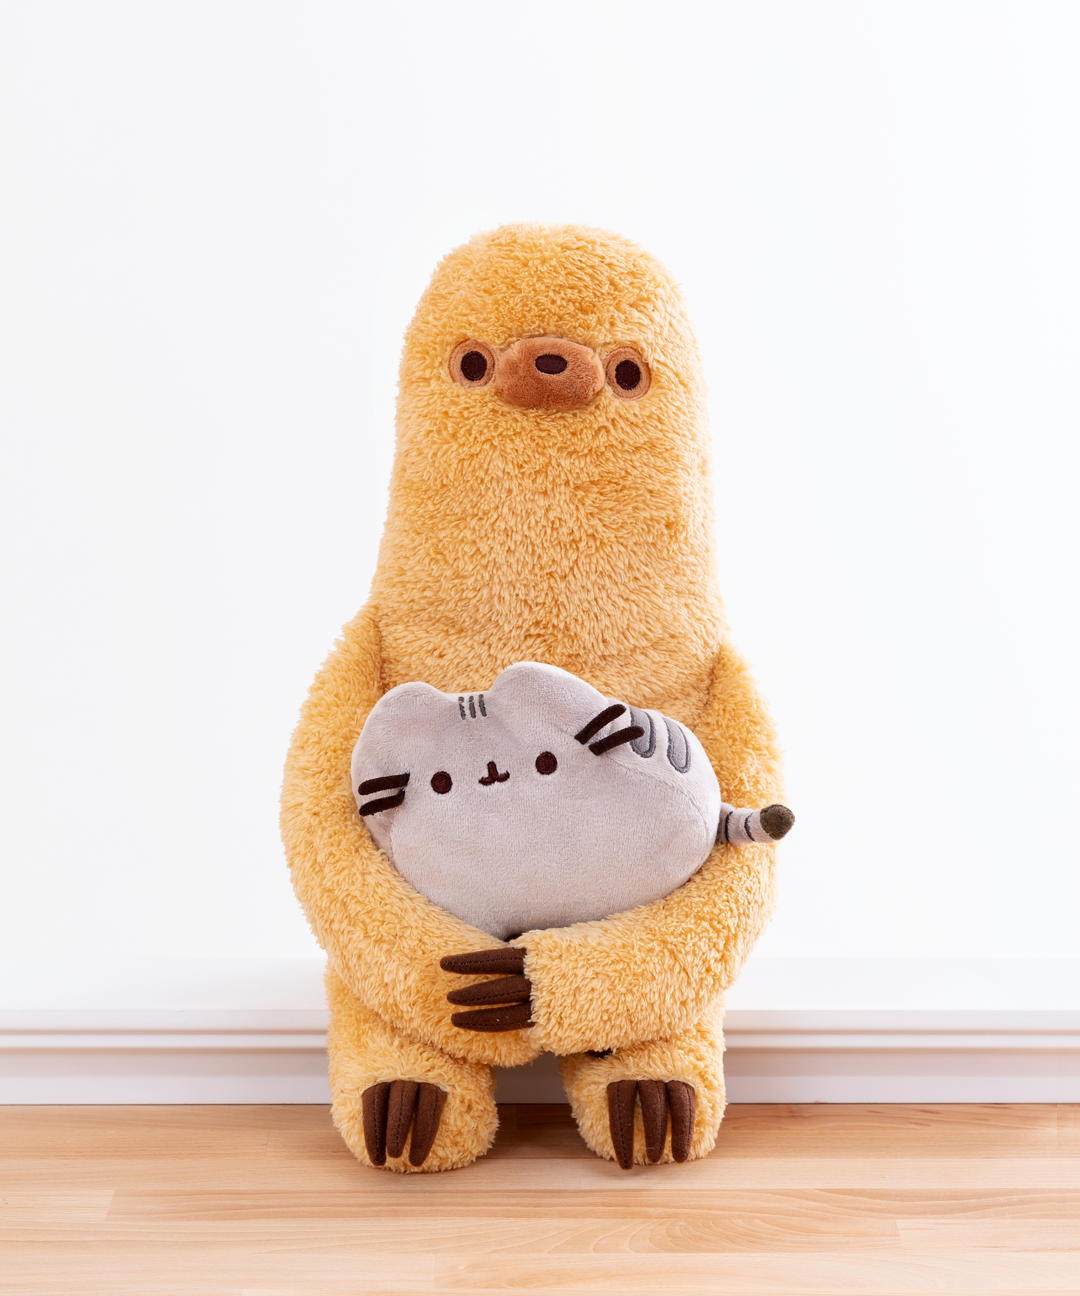 Pusheen & Sloth Plush Toy Set